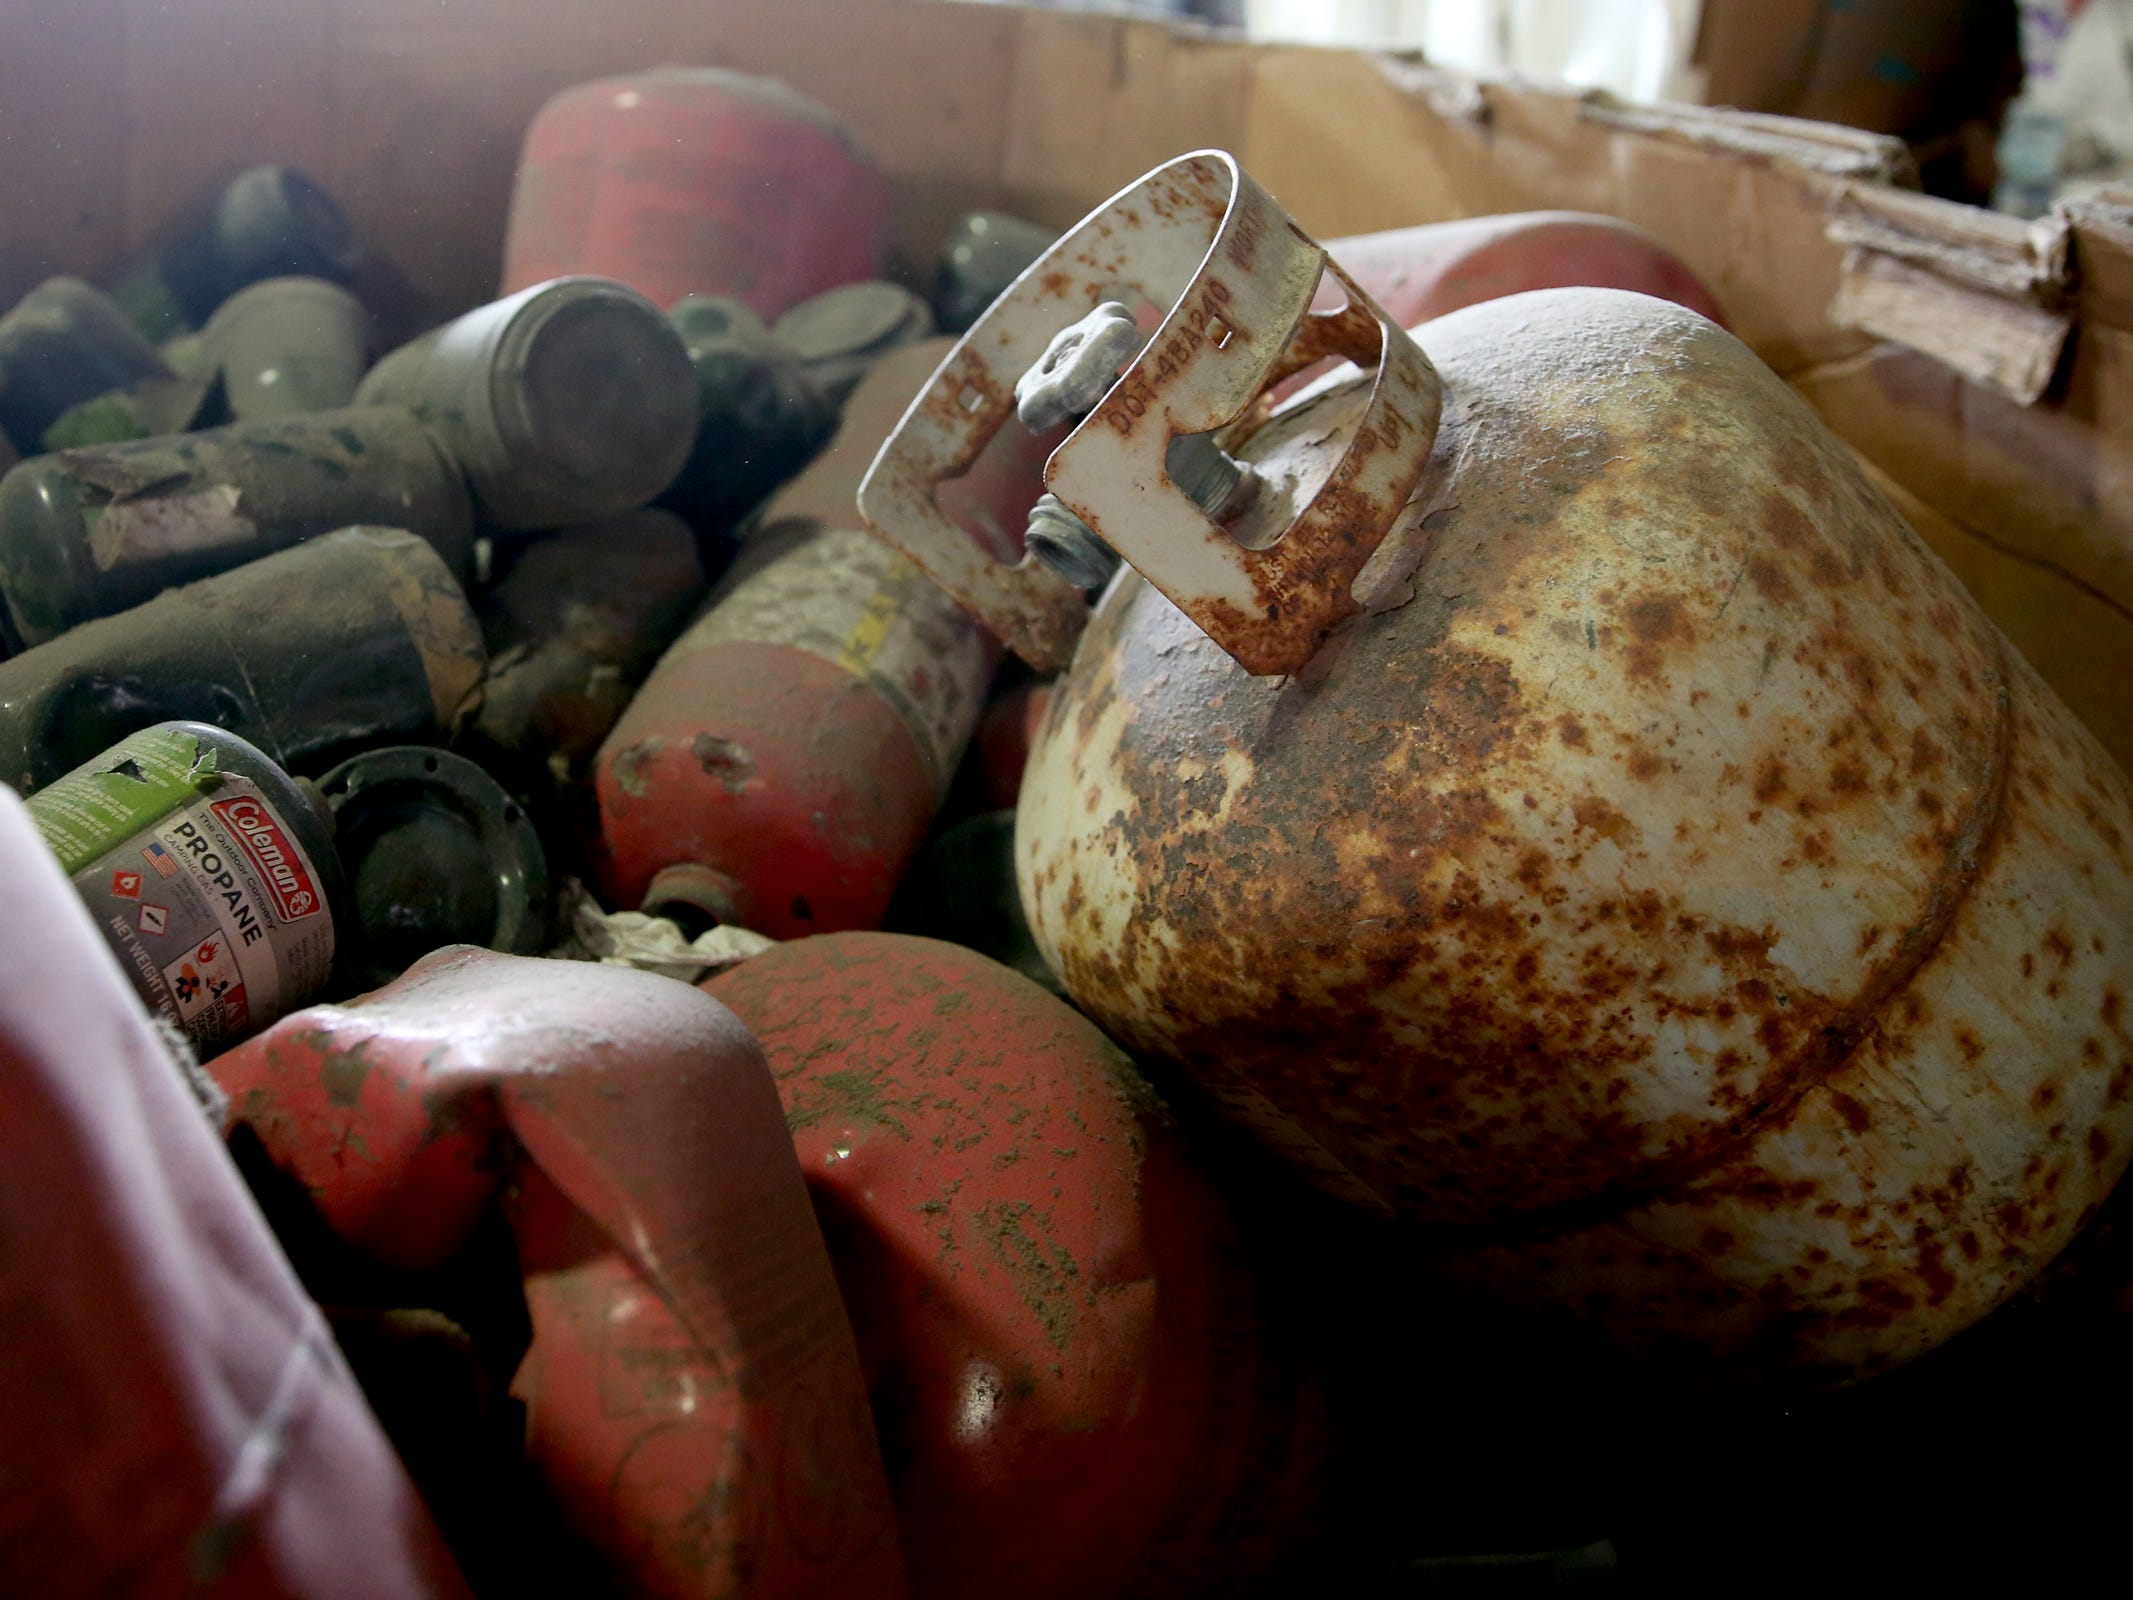 Trash that cannot be recycled or sold, like propane tanks, piles up at Garten Recycling in Salem on Friday, Aug. 3, 2018.